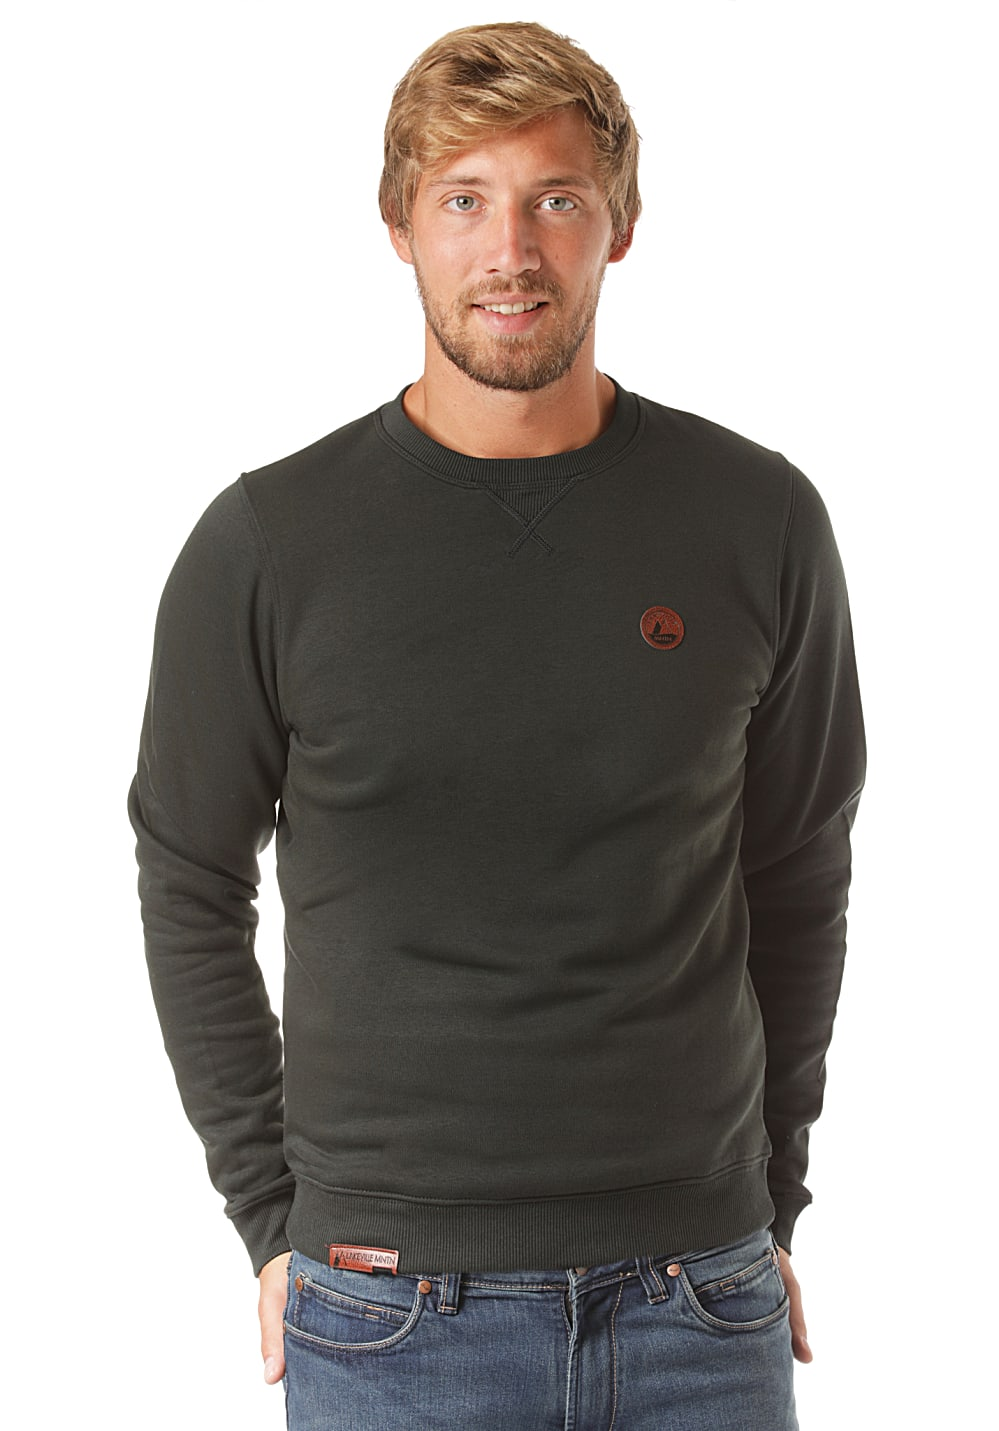 Lakeville Mountain Milo Sweatshirt for Men Green